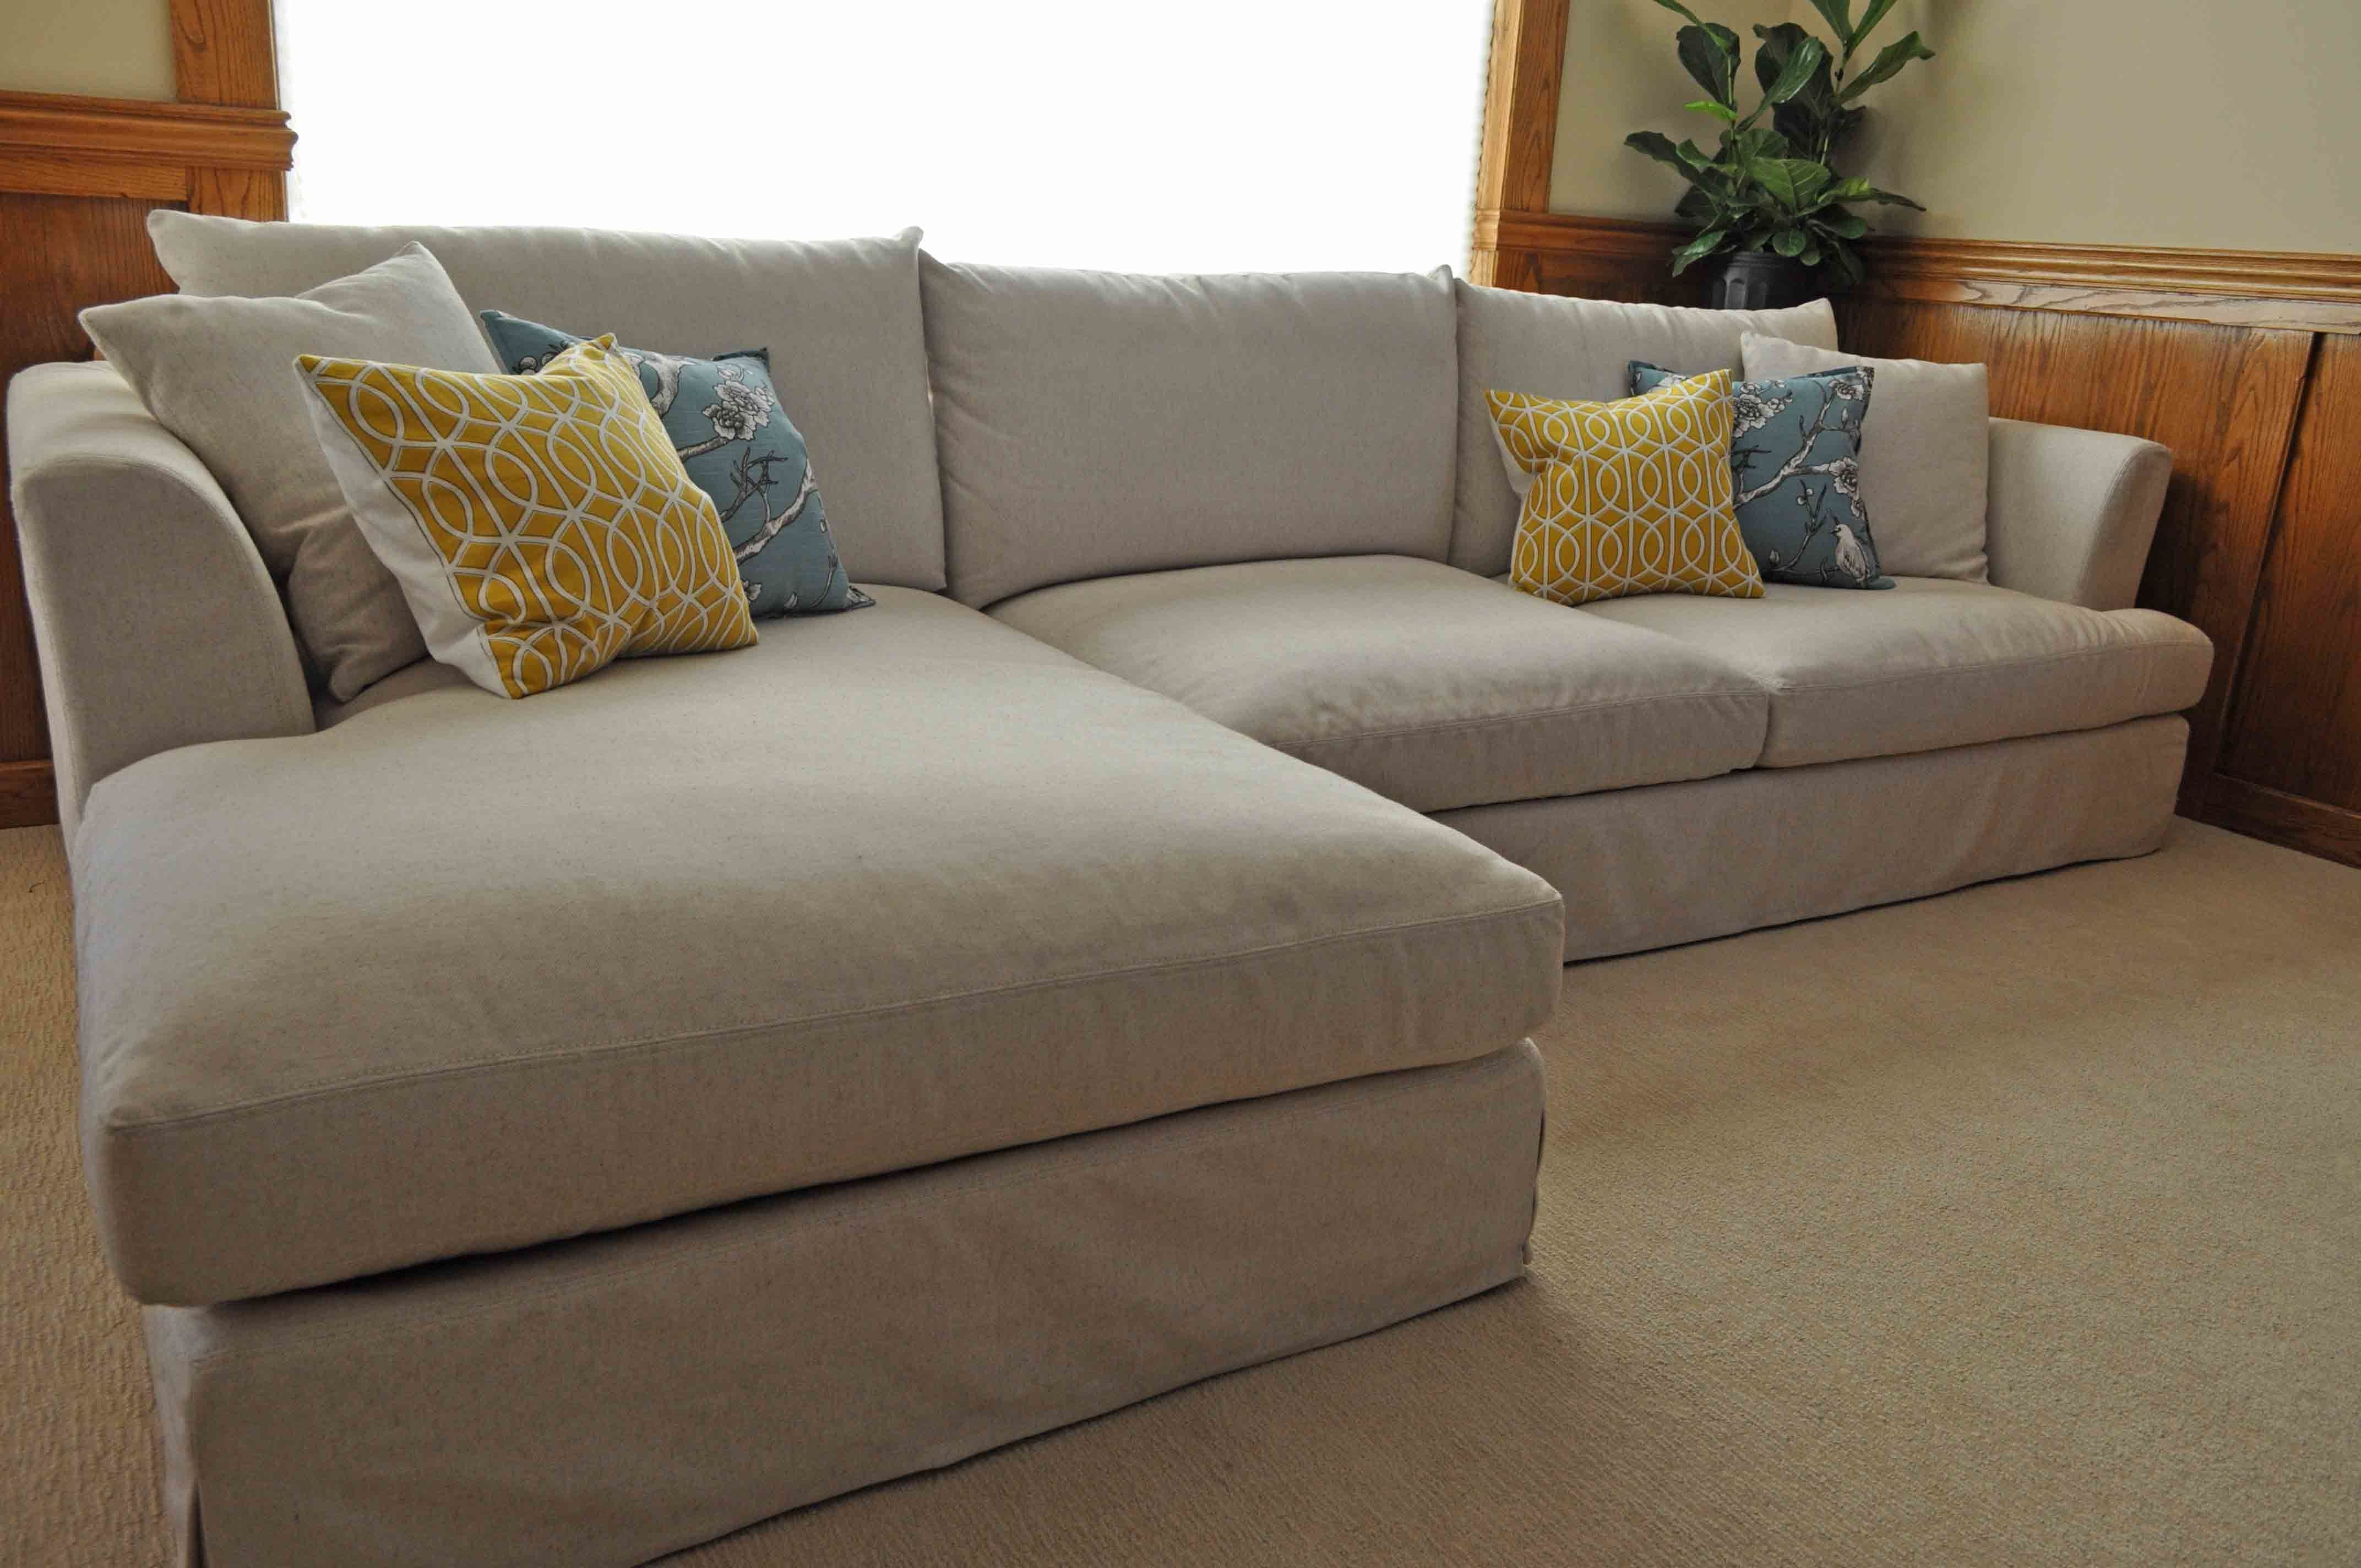 Sofa : Comfortable Sectional Sofas Most Comfortable Sofa Ashley Regarding Well Known Large Comfortable Sectional Sofas (View 3 of 15)